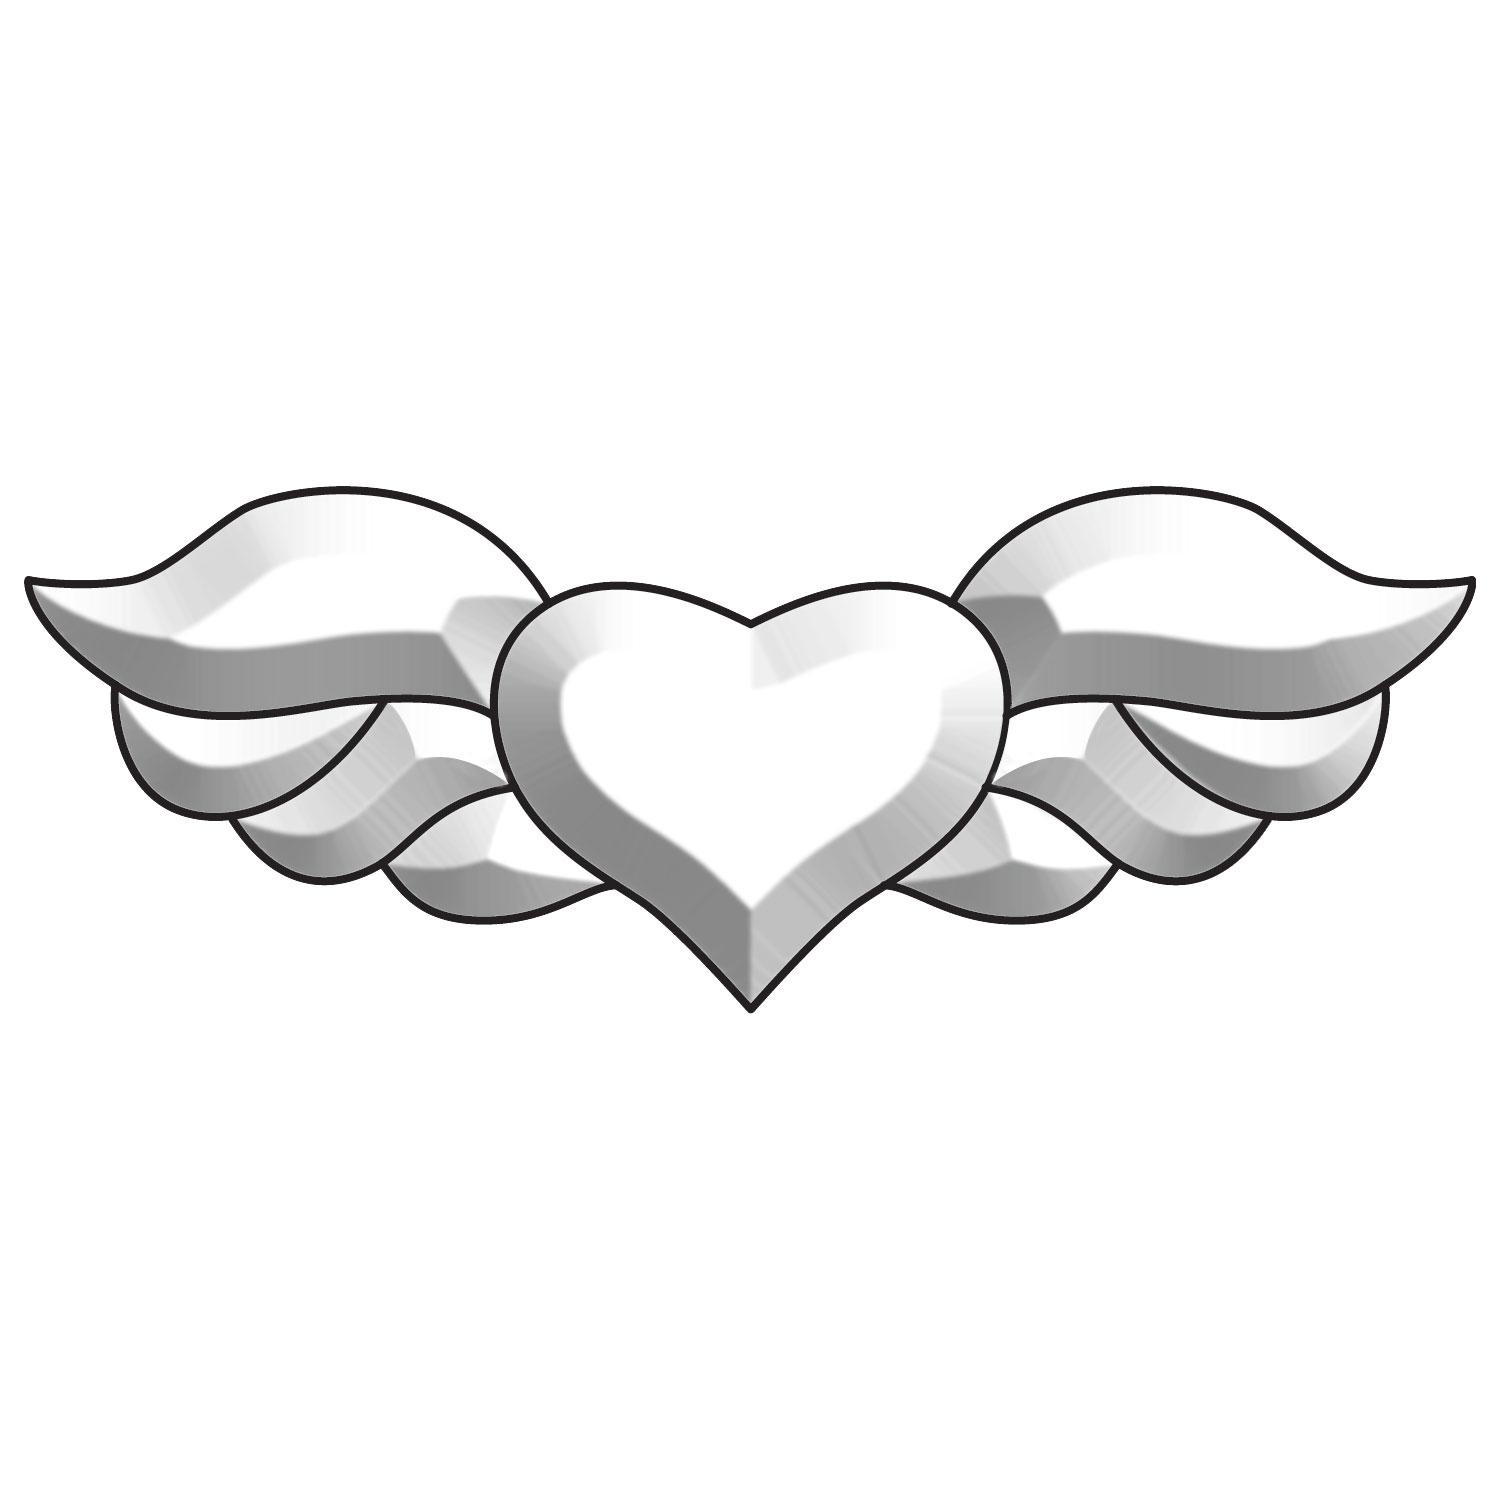 Winged Heart Bevel Cluster